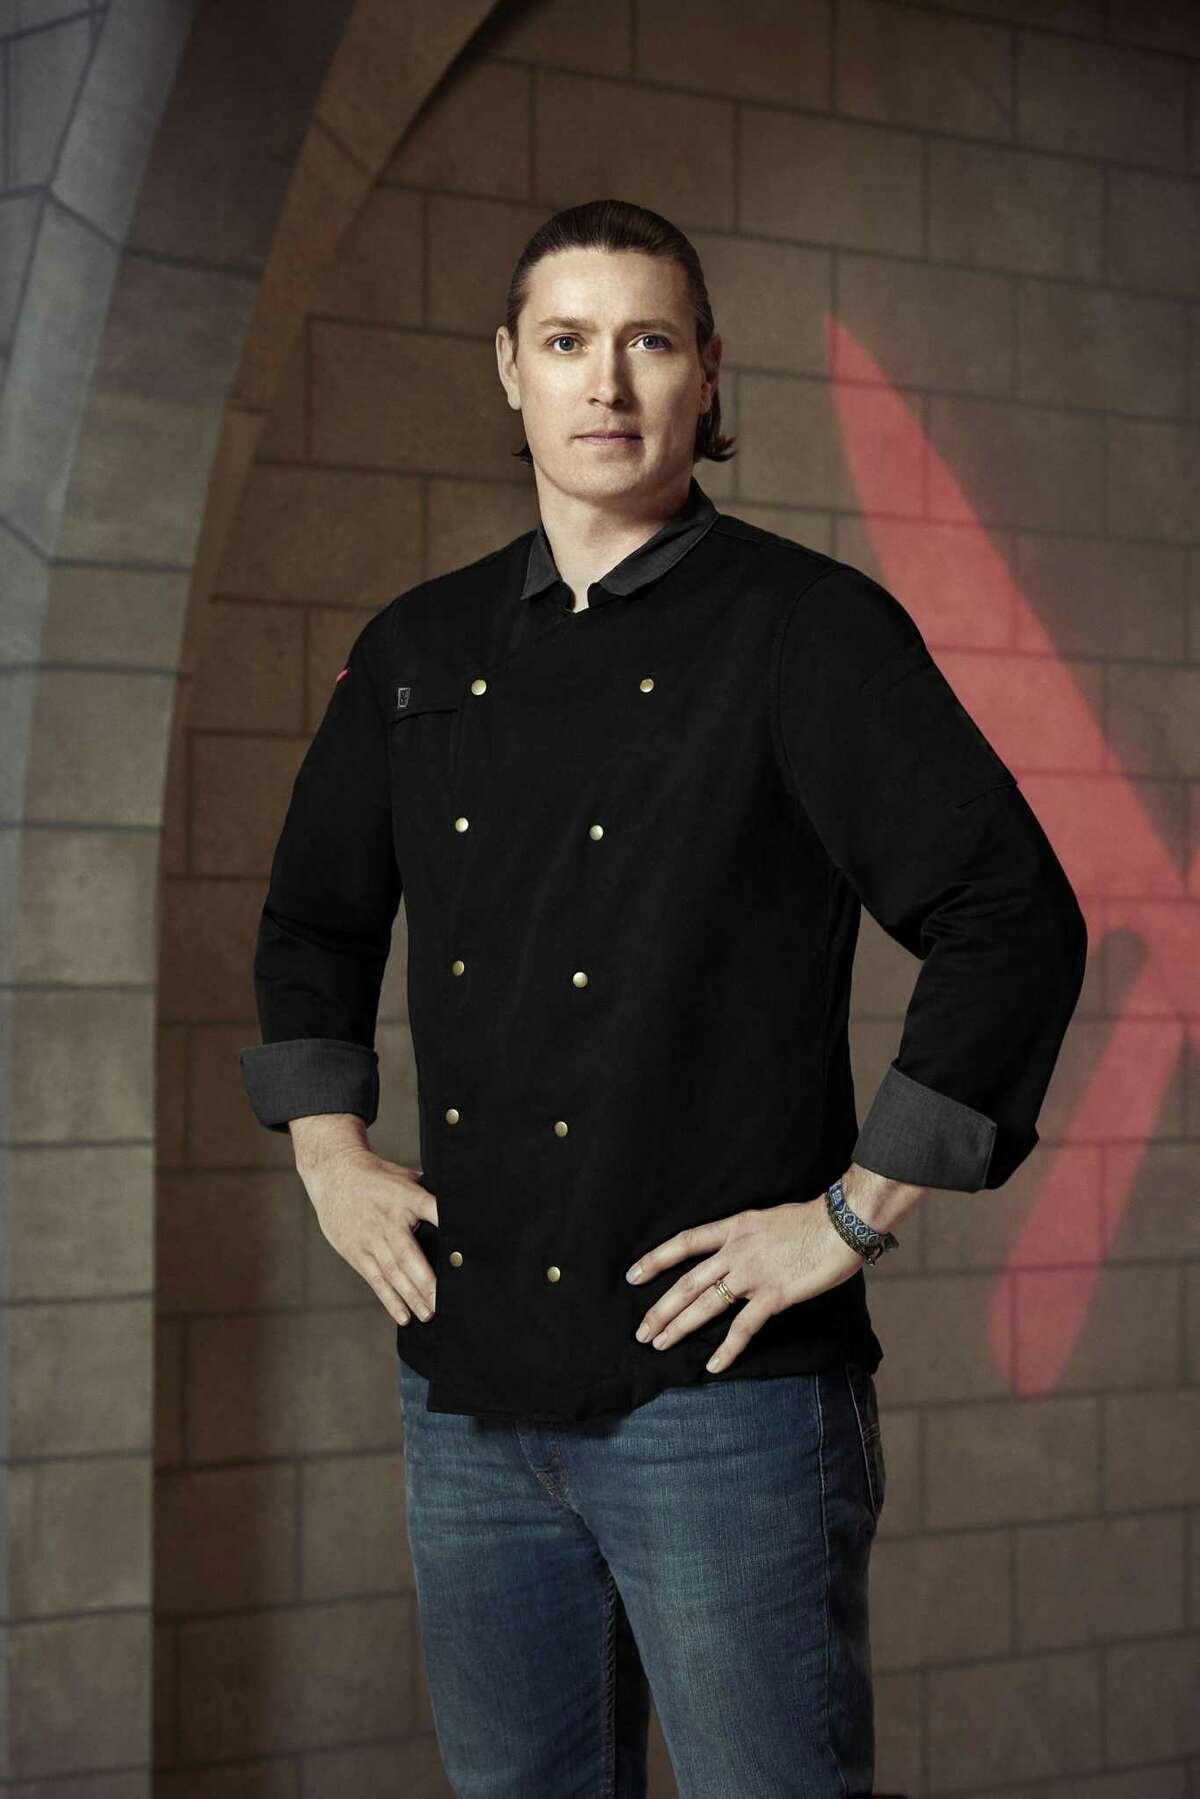 San Antonio chef Jason Dady competed in an episode of